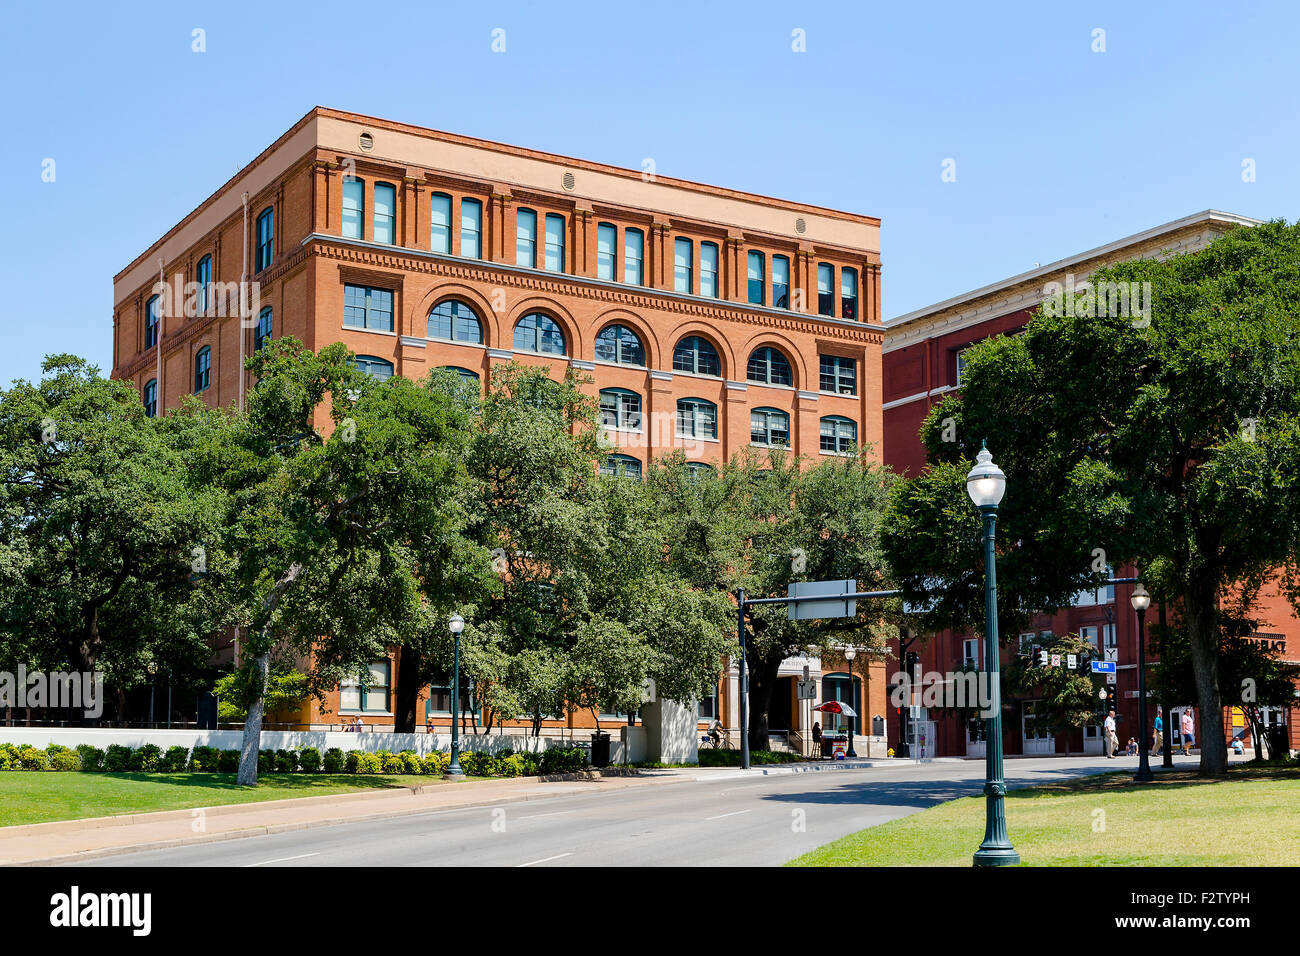 Dallas Texas School Book Depository USA  in Dealey plaza - Stock Image